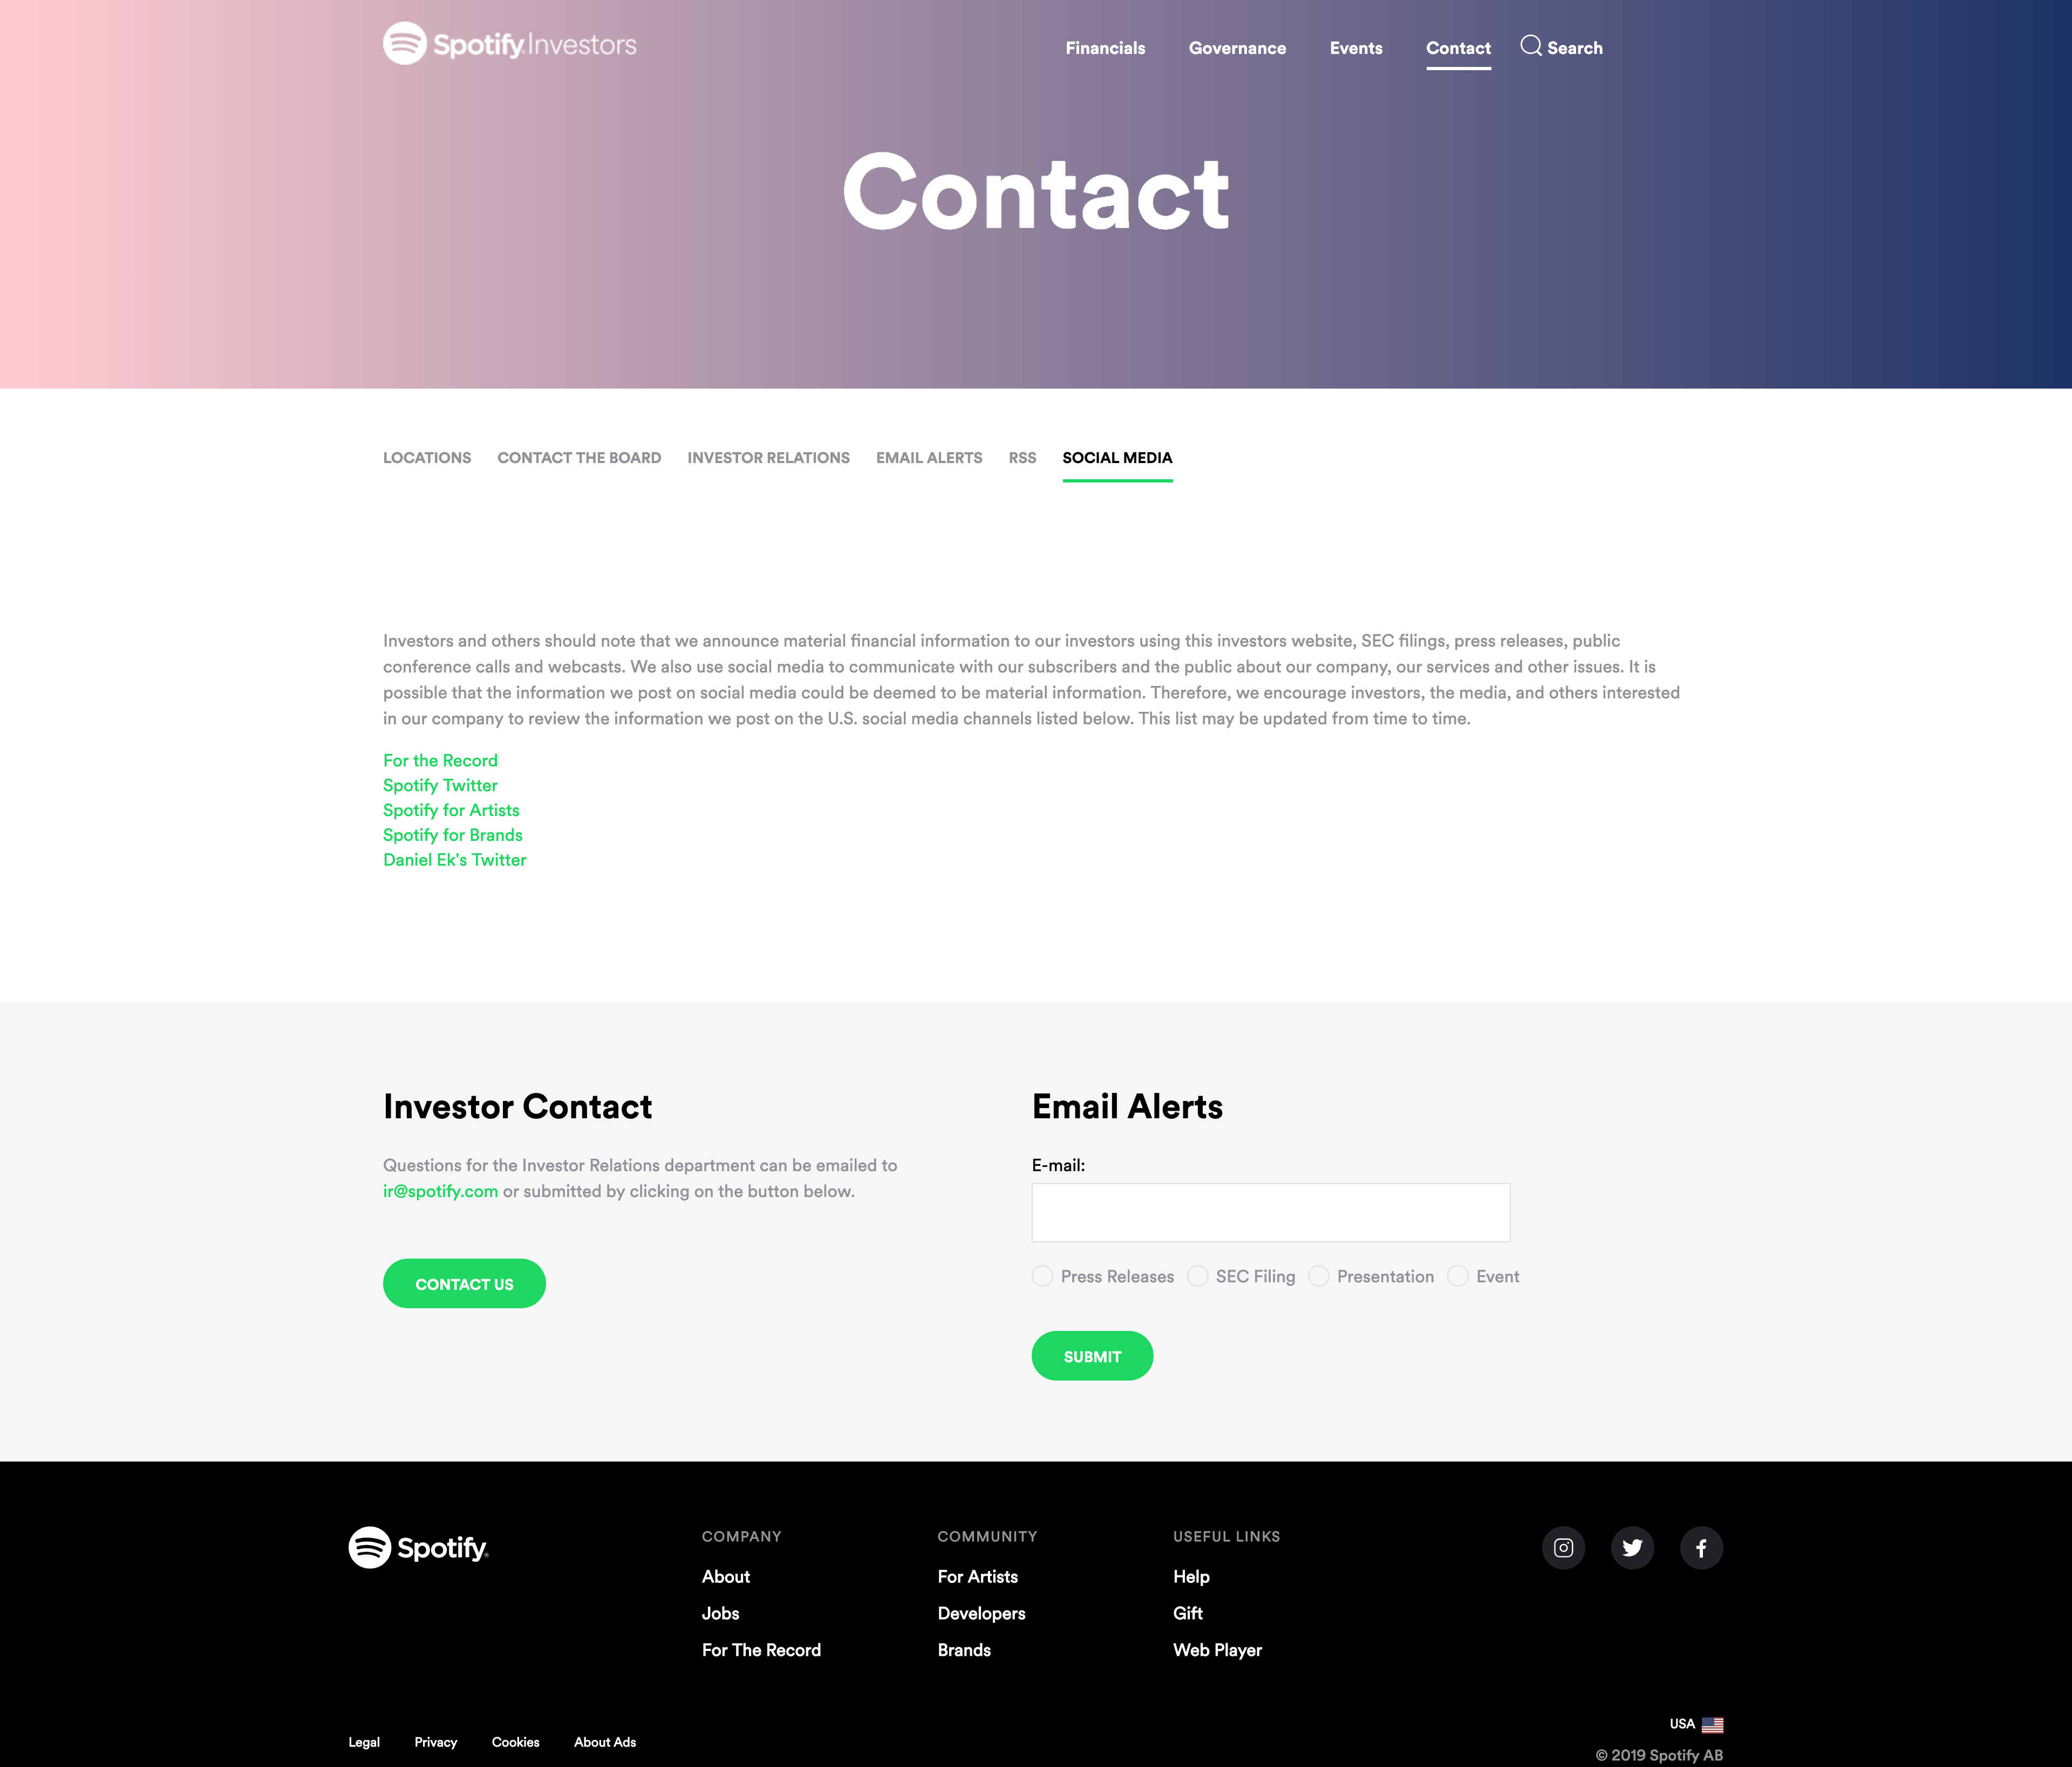 Social Media Contact by Spotify Inverstors